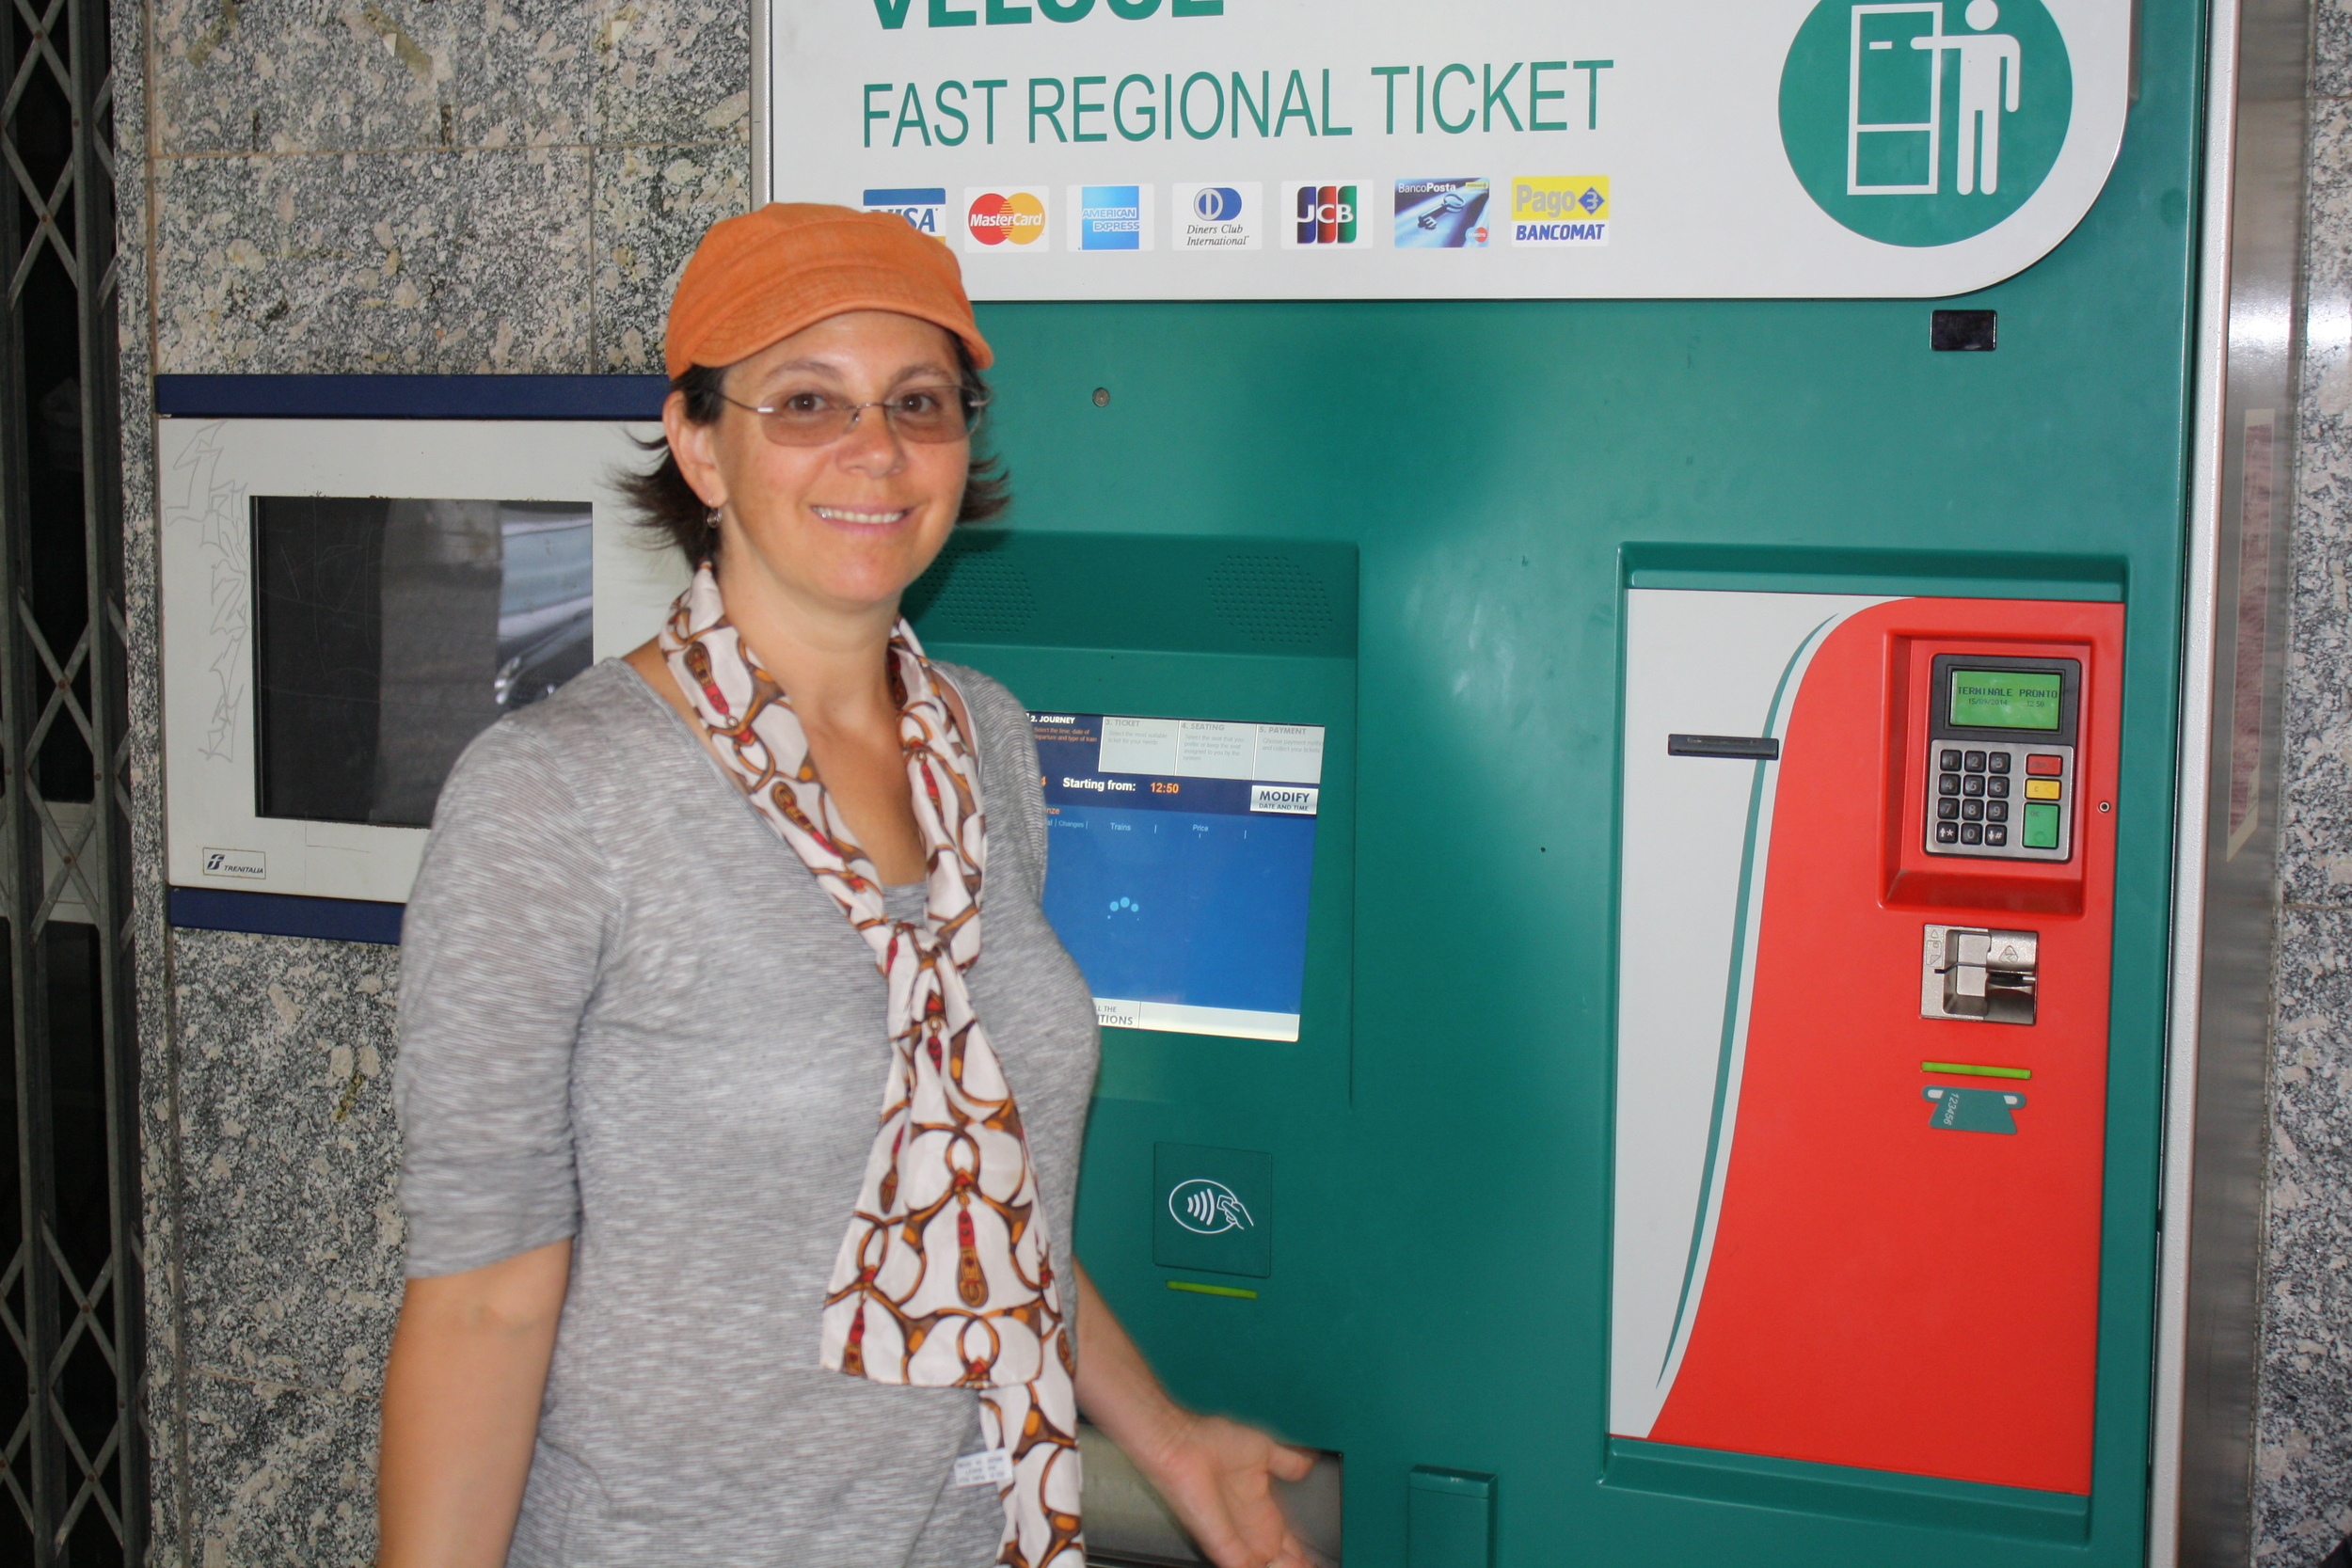 My mom in front of the ticket machine that took 30 minutes to work.